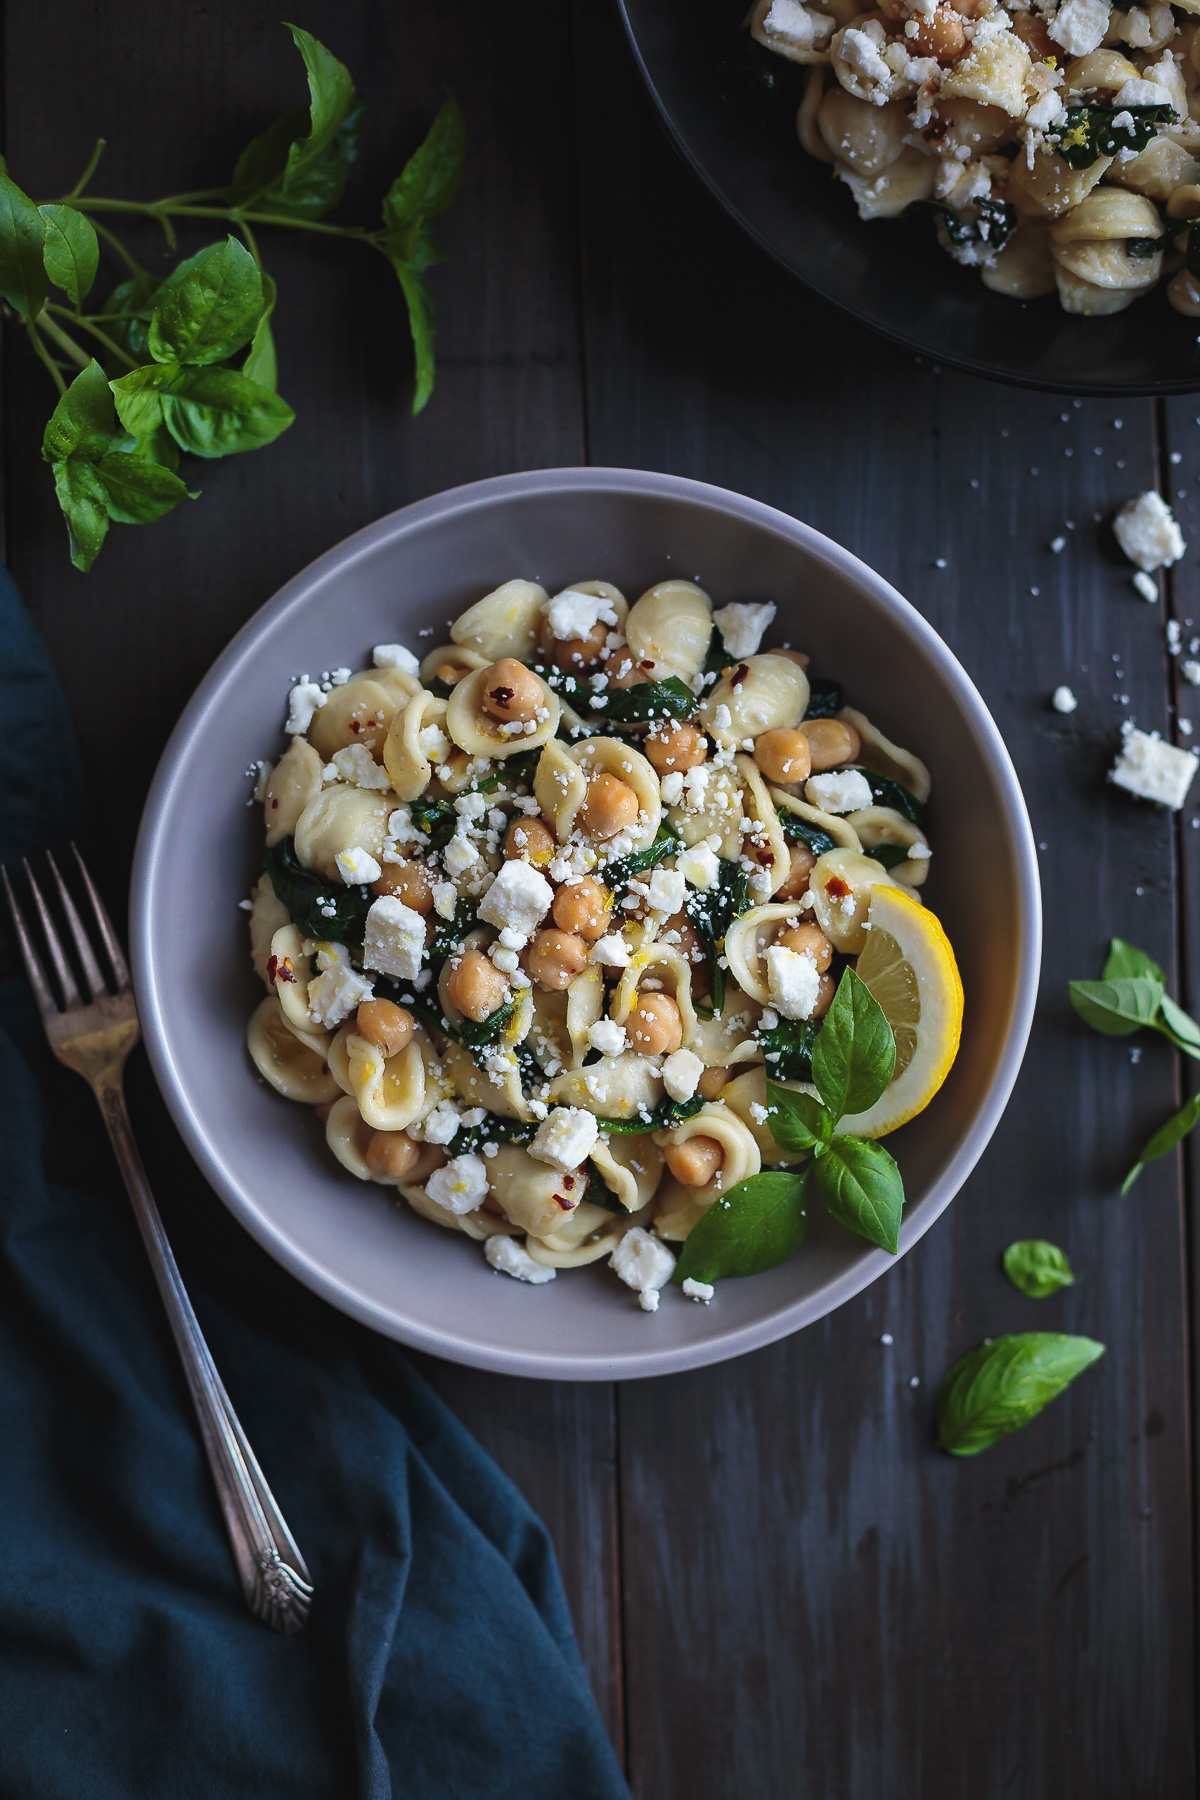 Orecchiette with Chickpeas Spinach and Feta is a simple and quick dinner that tastes incredible! In the time it takes to boil the pasta, you can prepare the rest of the ingredients and have dinner on the table in a flash. From @tasteLUVnourish #orecchiette #chickpeas #spinach #feta #easydinnerrecipes #pastarecipes